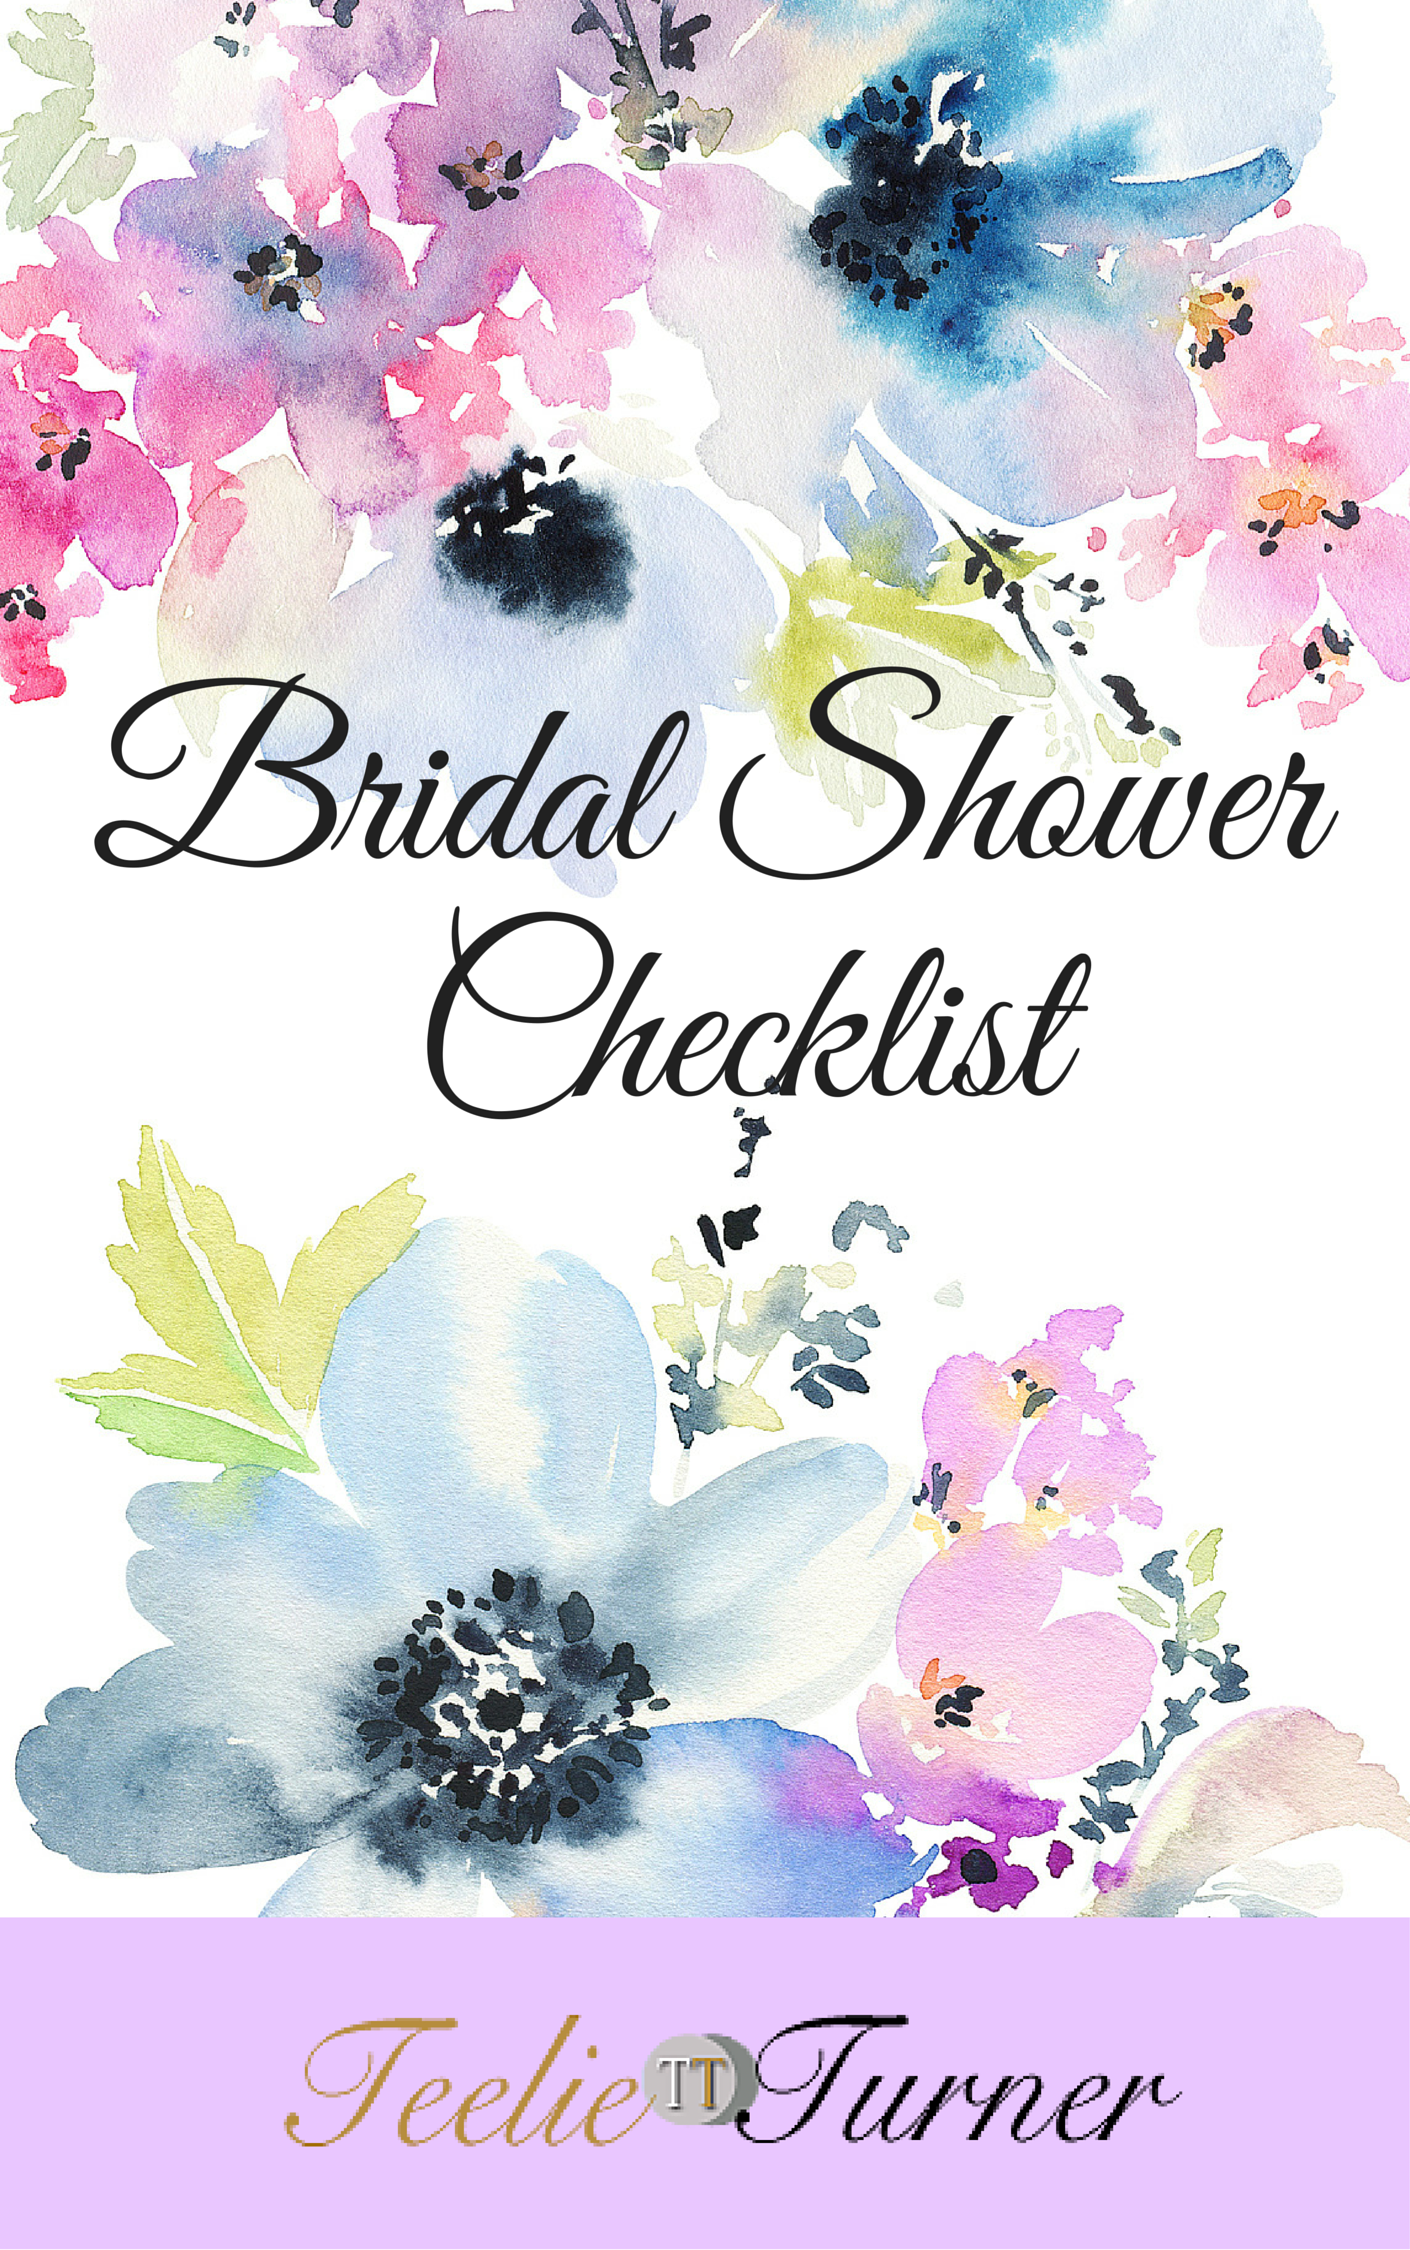 Bridal Shower Is One Of The Most Exciting Events Before The